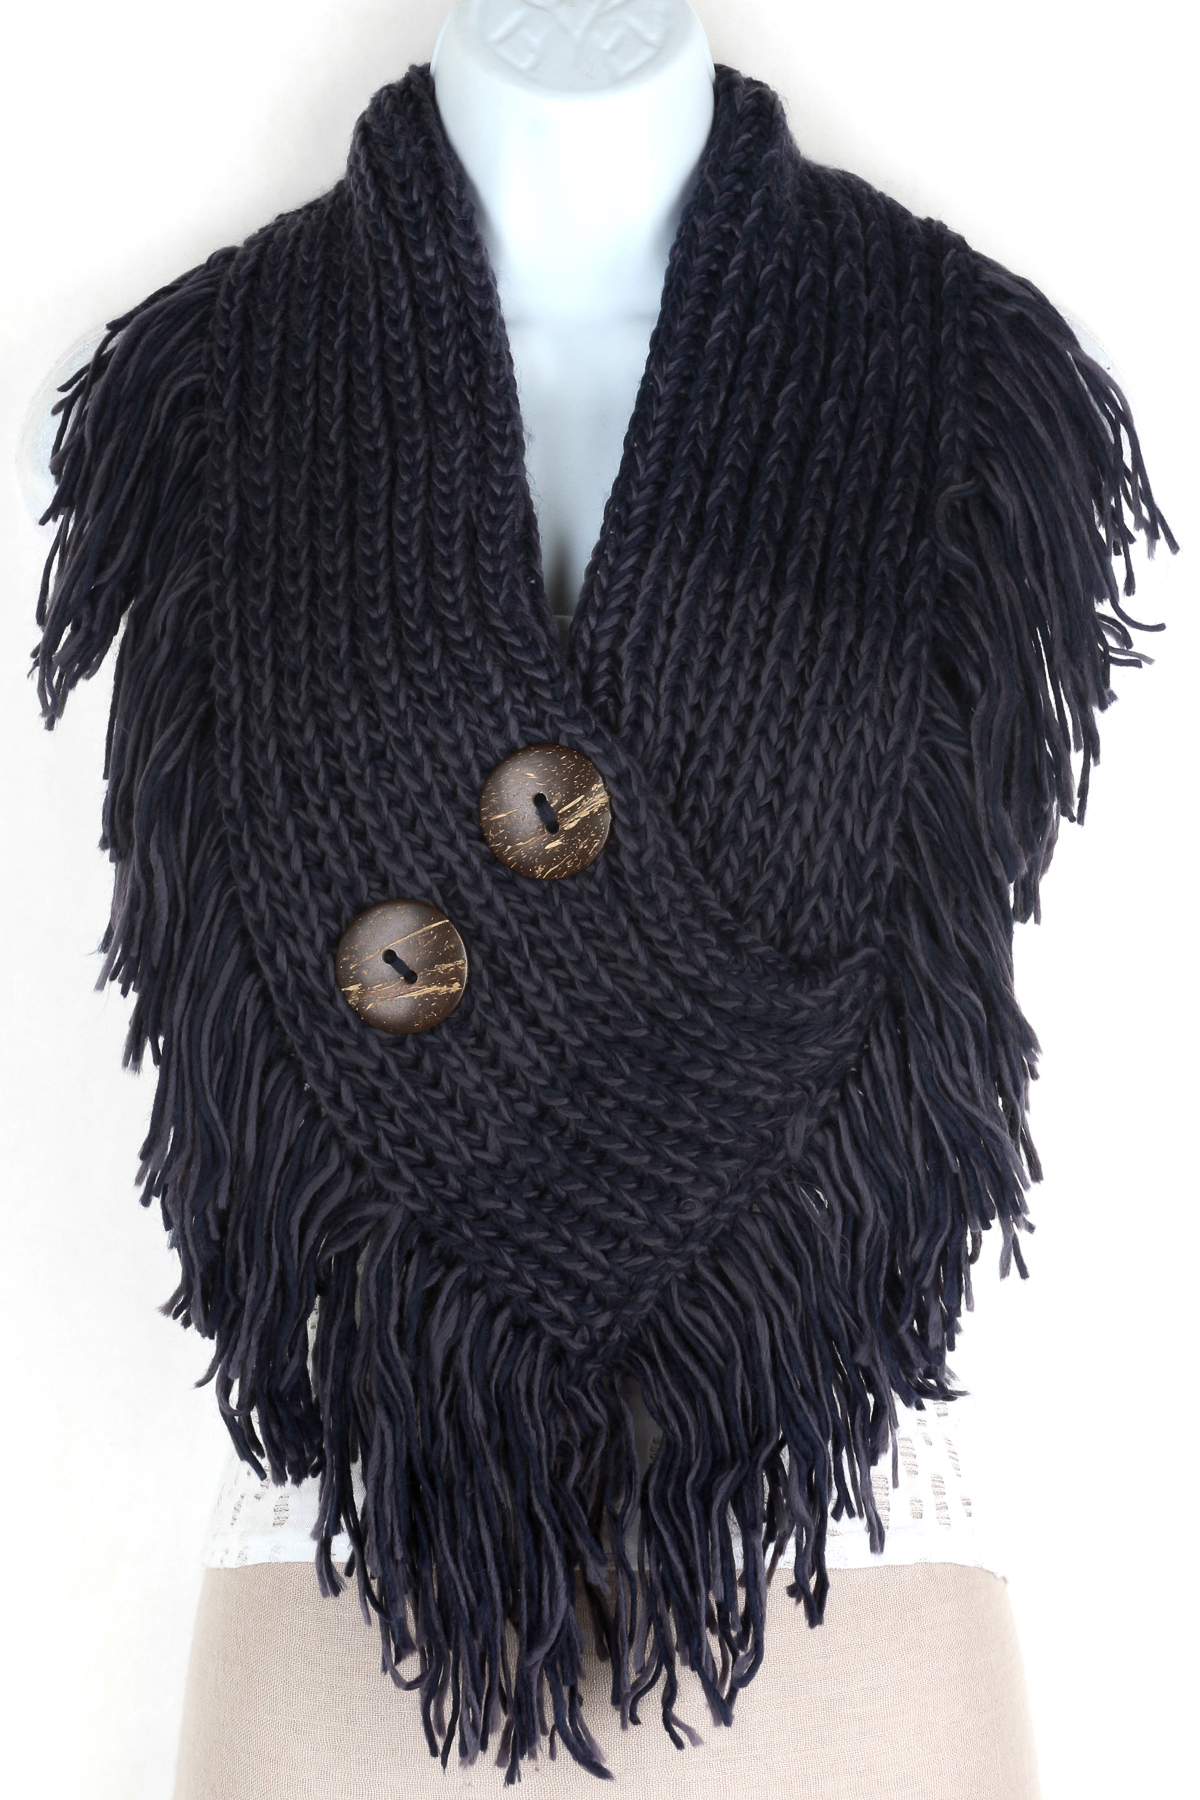 Knitting Pattern Scarf With Fringe : Knitted Button Infinity Fringe Scarf - Scarves